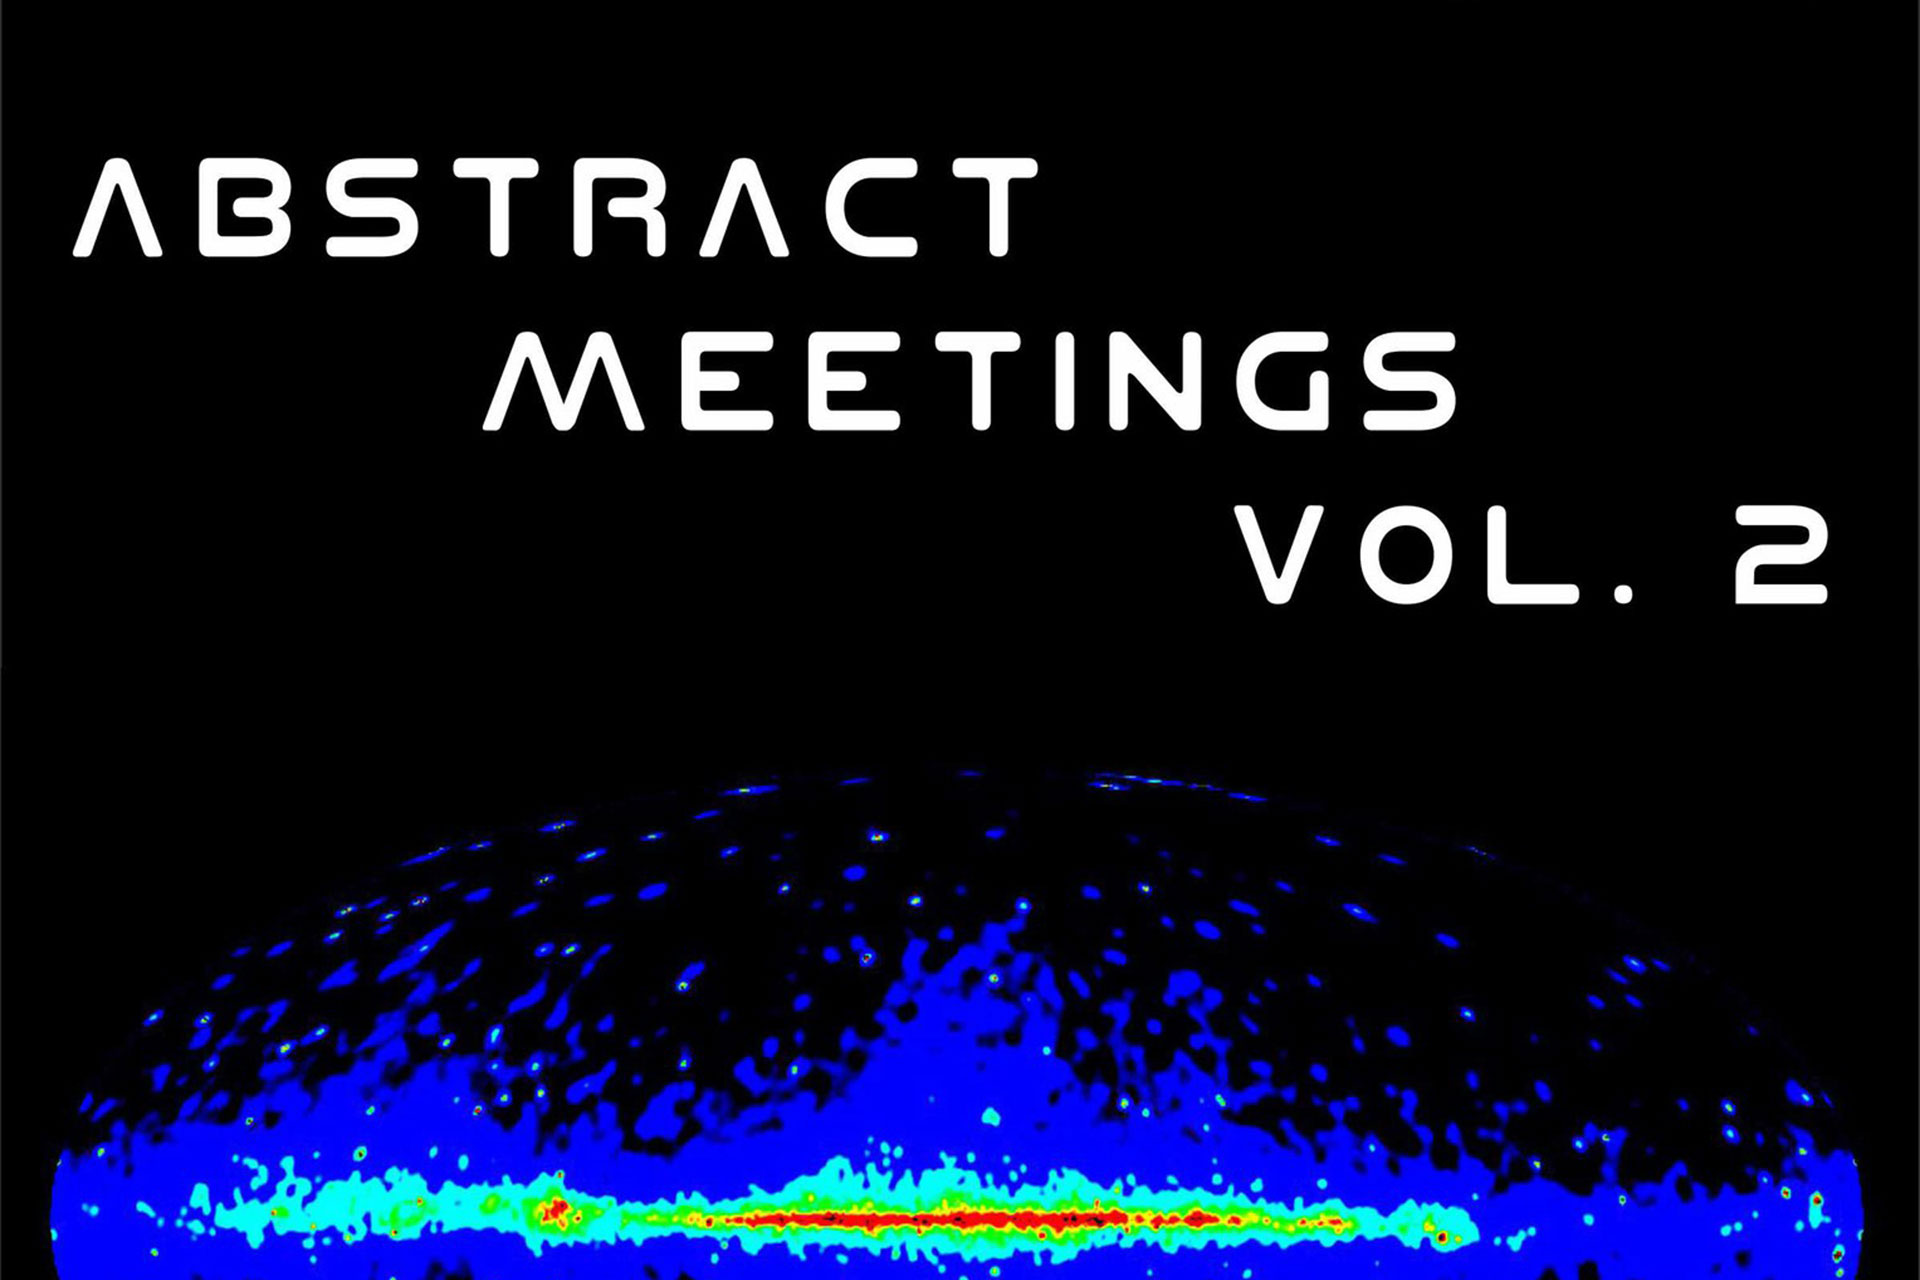 Abstract Meetings vol.2